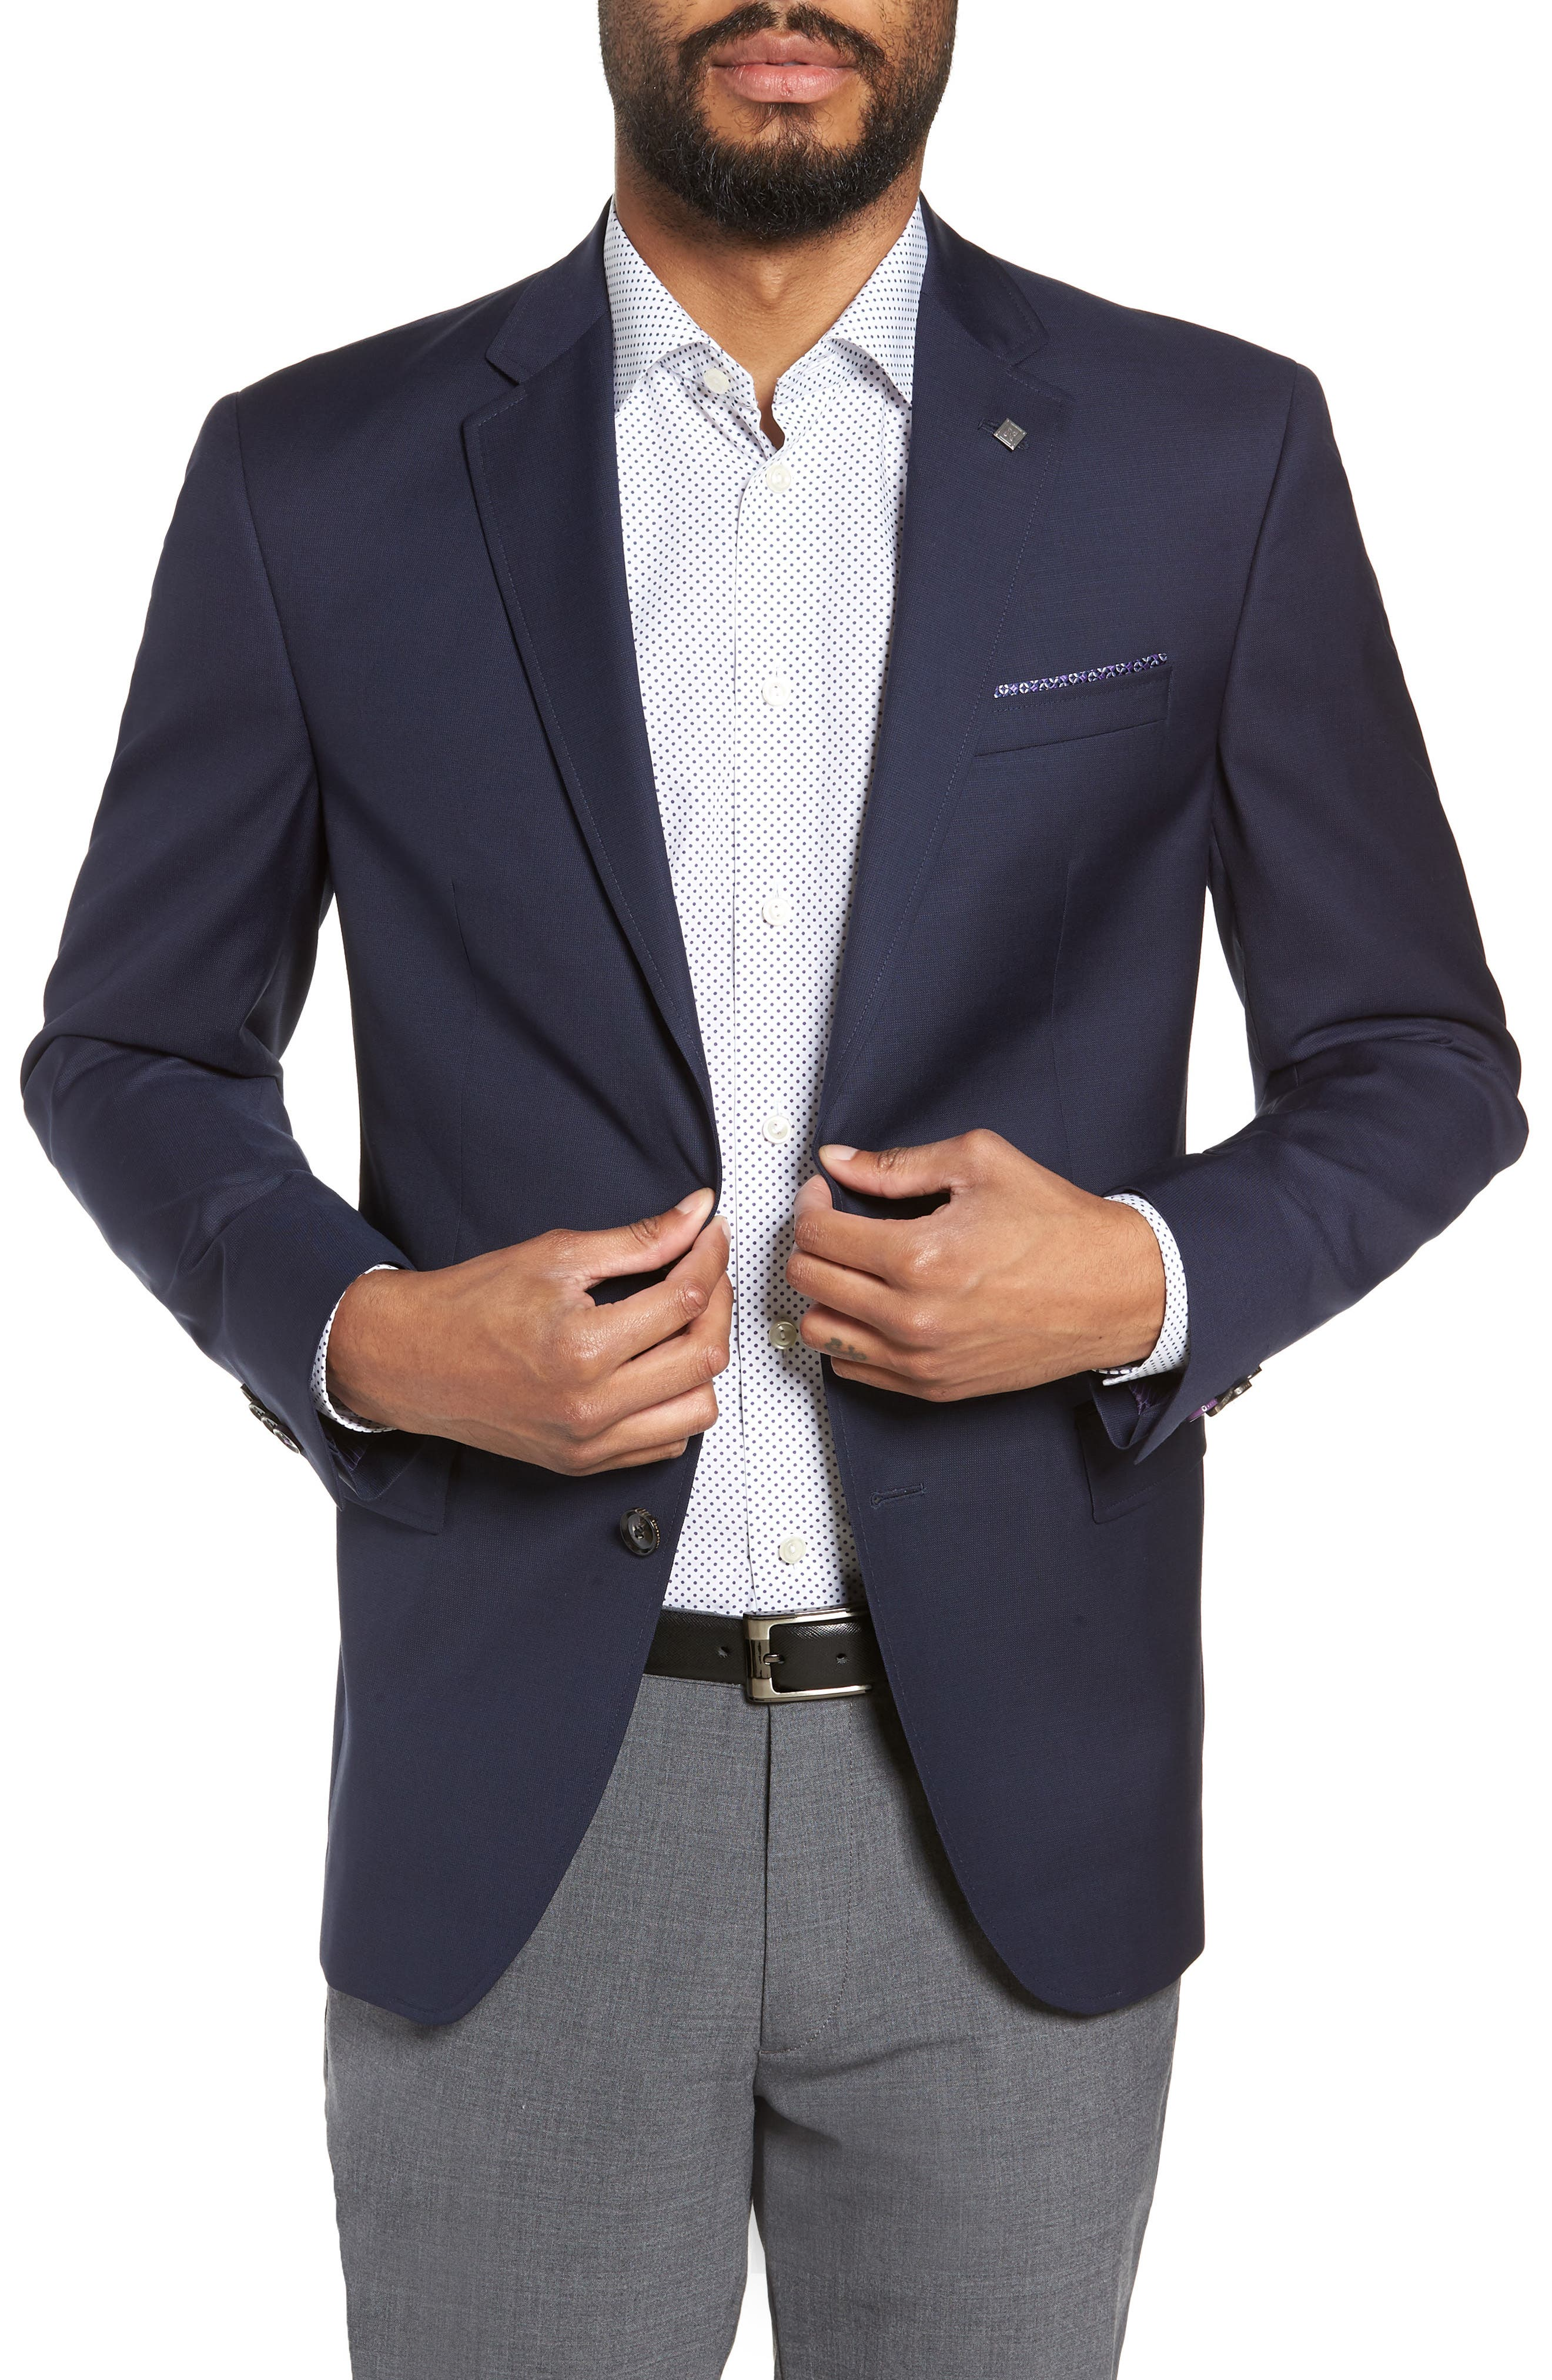 Trevi Trim Fit Wool Blazer,                             Main thumbnail 1, color,                             NAVY